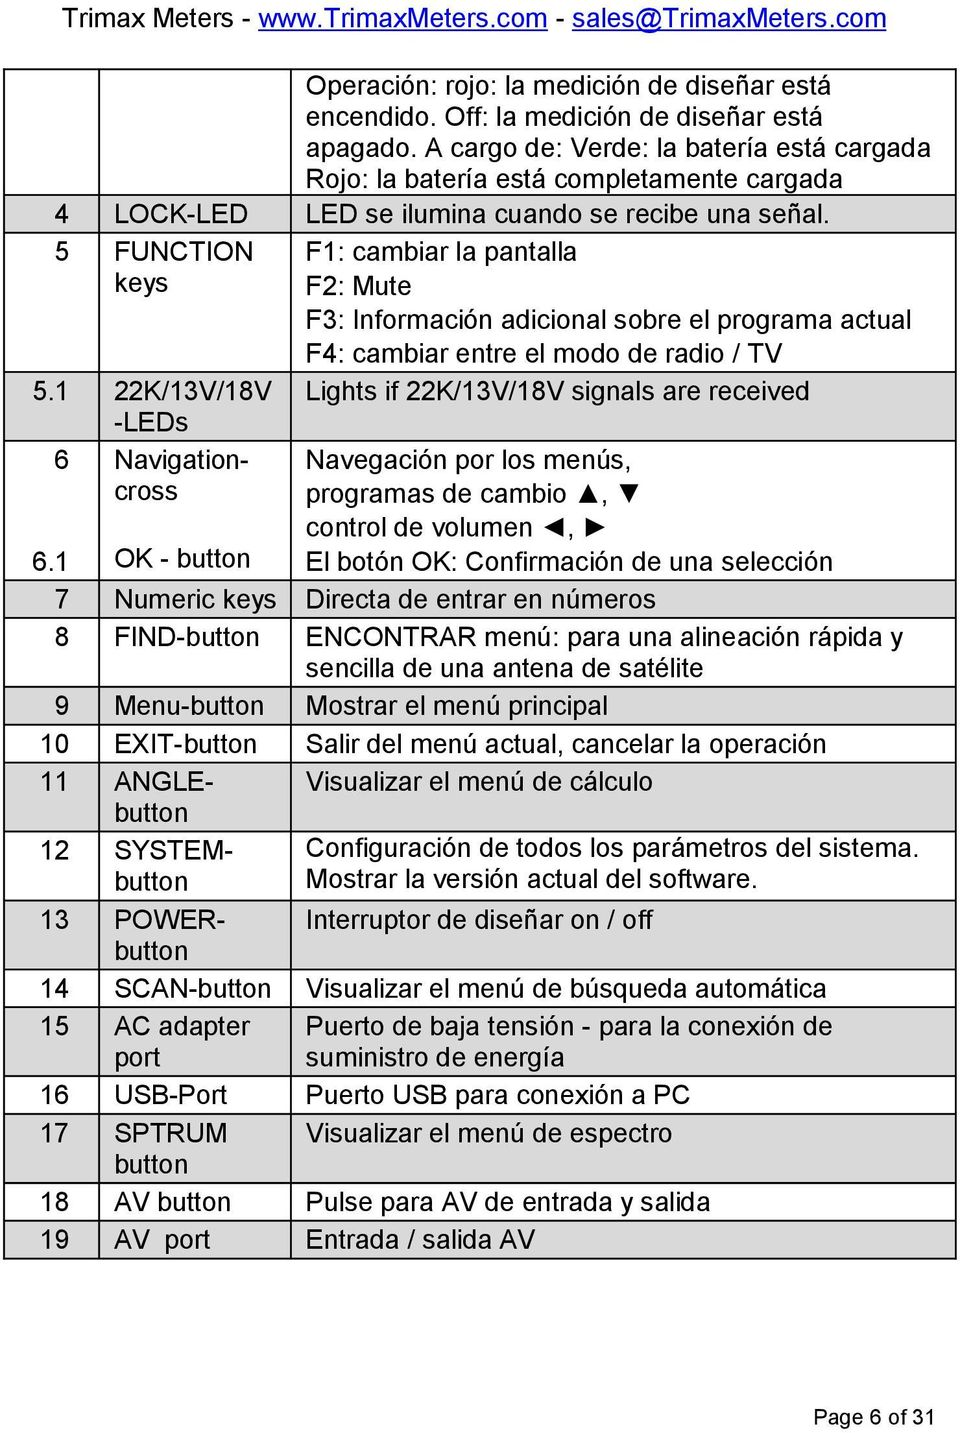 1 OK - button F1: cambiar la pantalla F2: Mute F3: Información adicional sobre el programa actual F4: cambiar entre el modo de radio / TV Lights if 22K/13V/18V signals are received Navegación por los